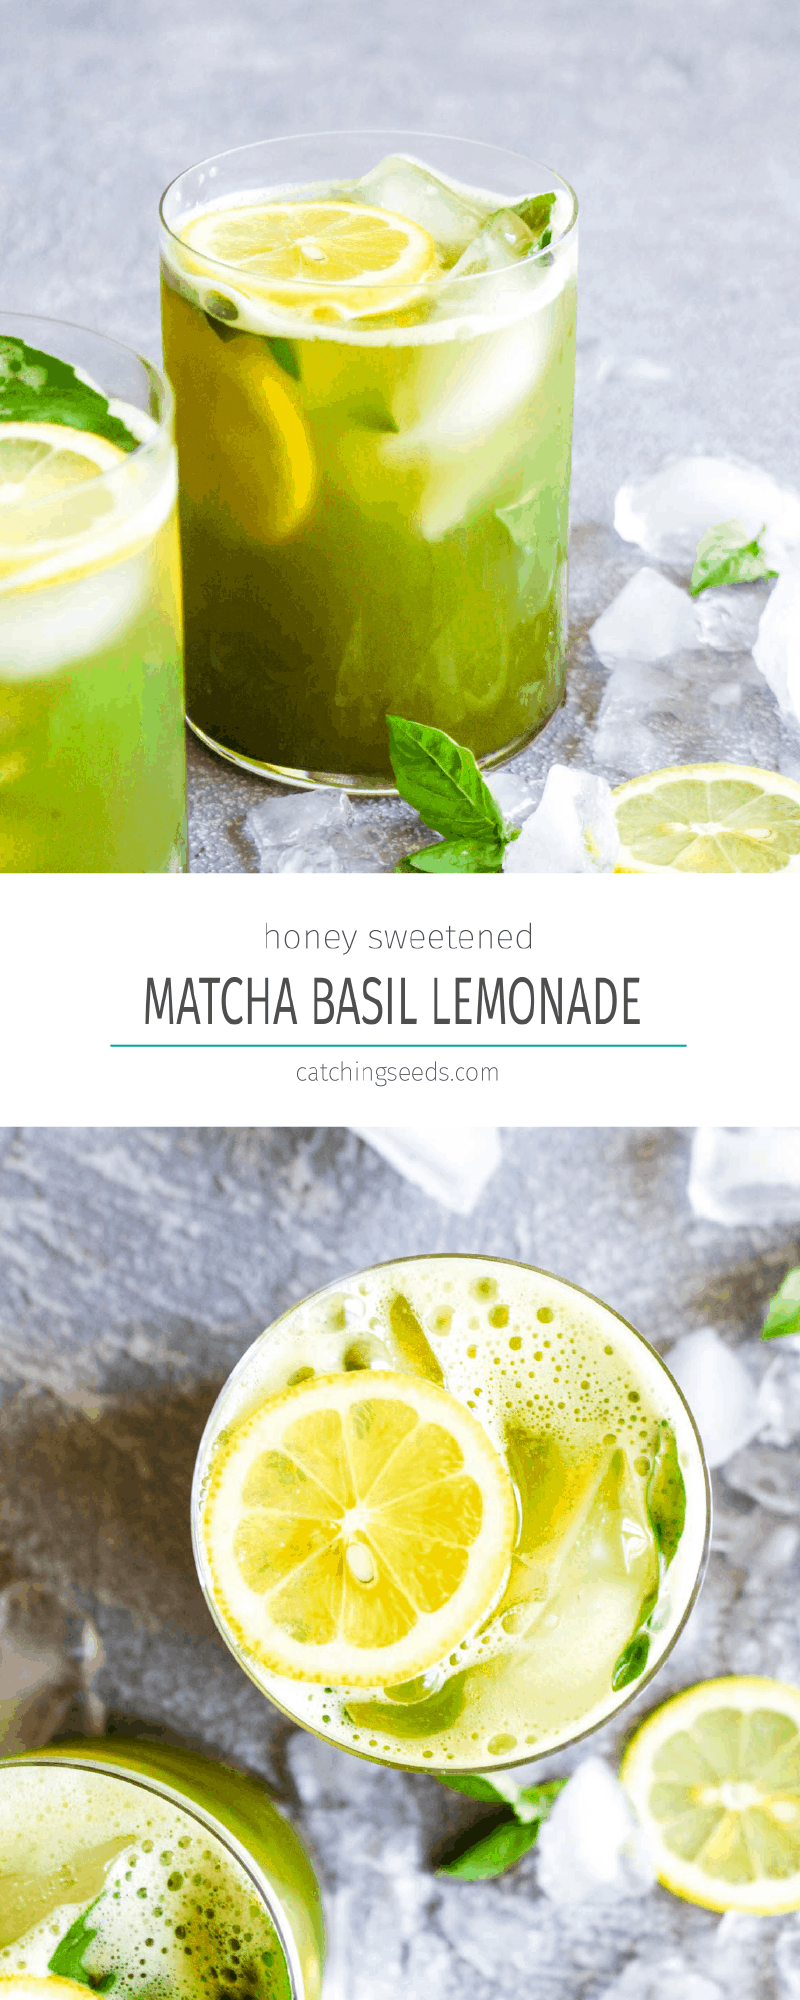 10 minute Matcha Basil Lemonade is a refreshing summer drink sweetened with honey! This healthy beverage is paleo and full of antioxidants. | CatchingSeeds.com